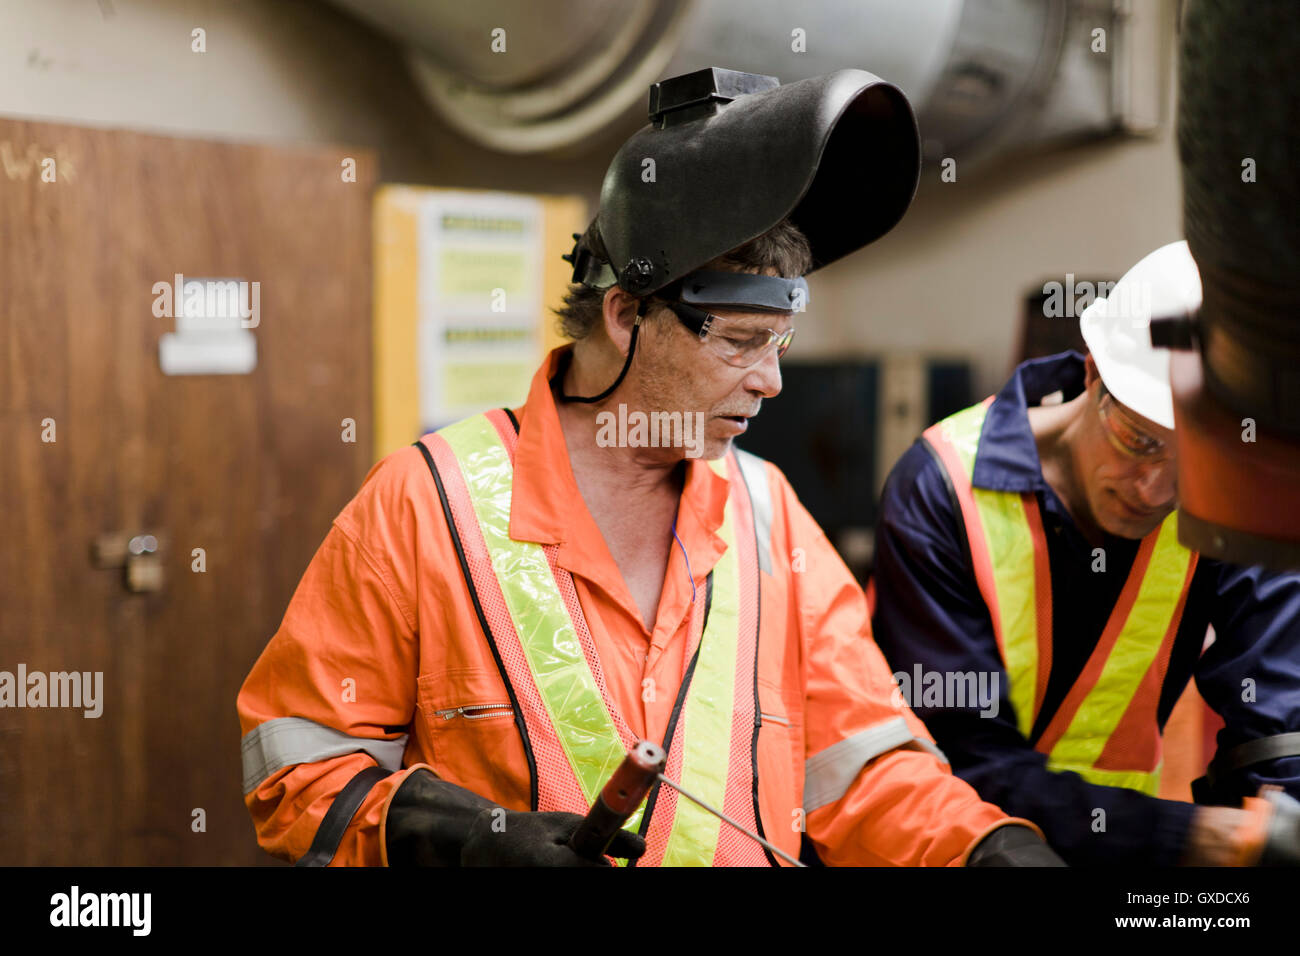 Welder and engineer in brainstorming session on oil rig - Stock Image